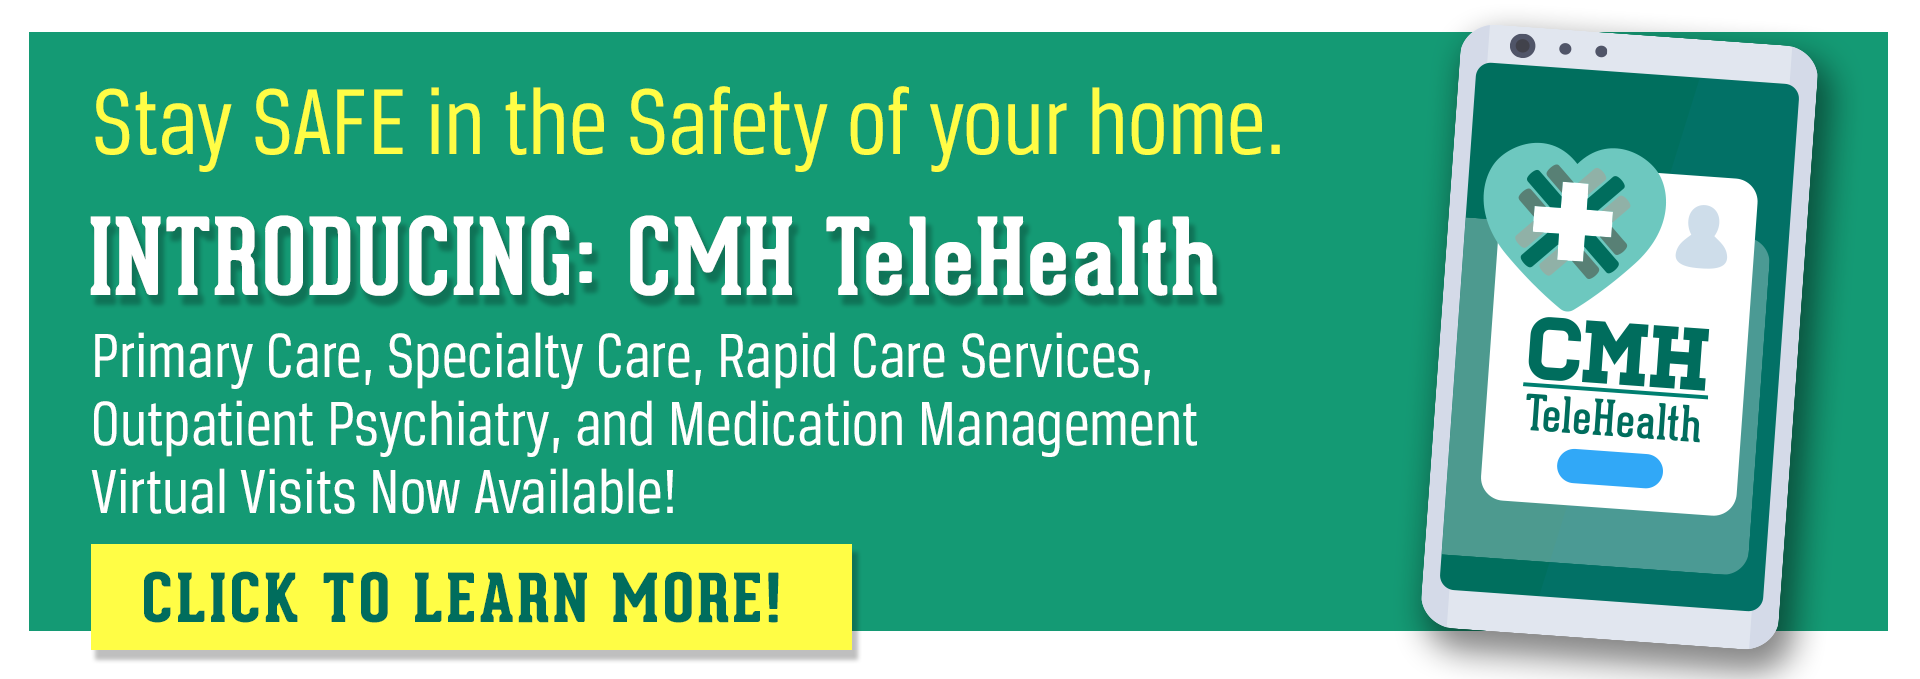 Introducing CMH Telehealth Visits for Primary, Specialty, Rapid Care